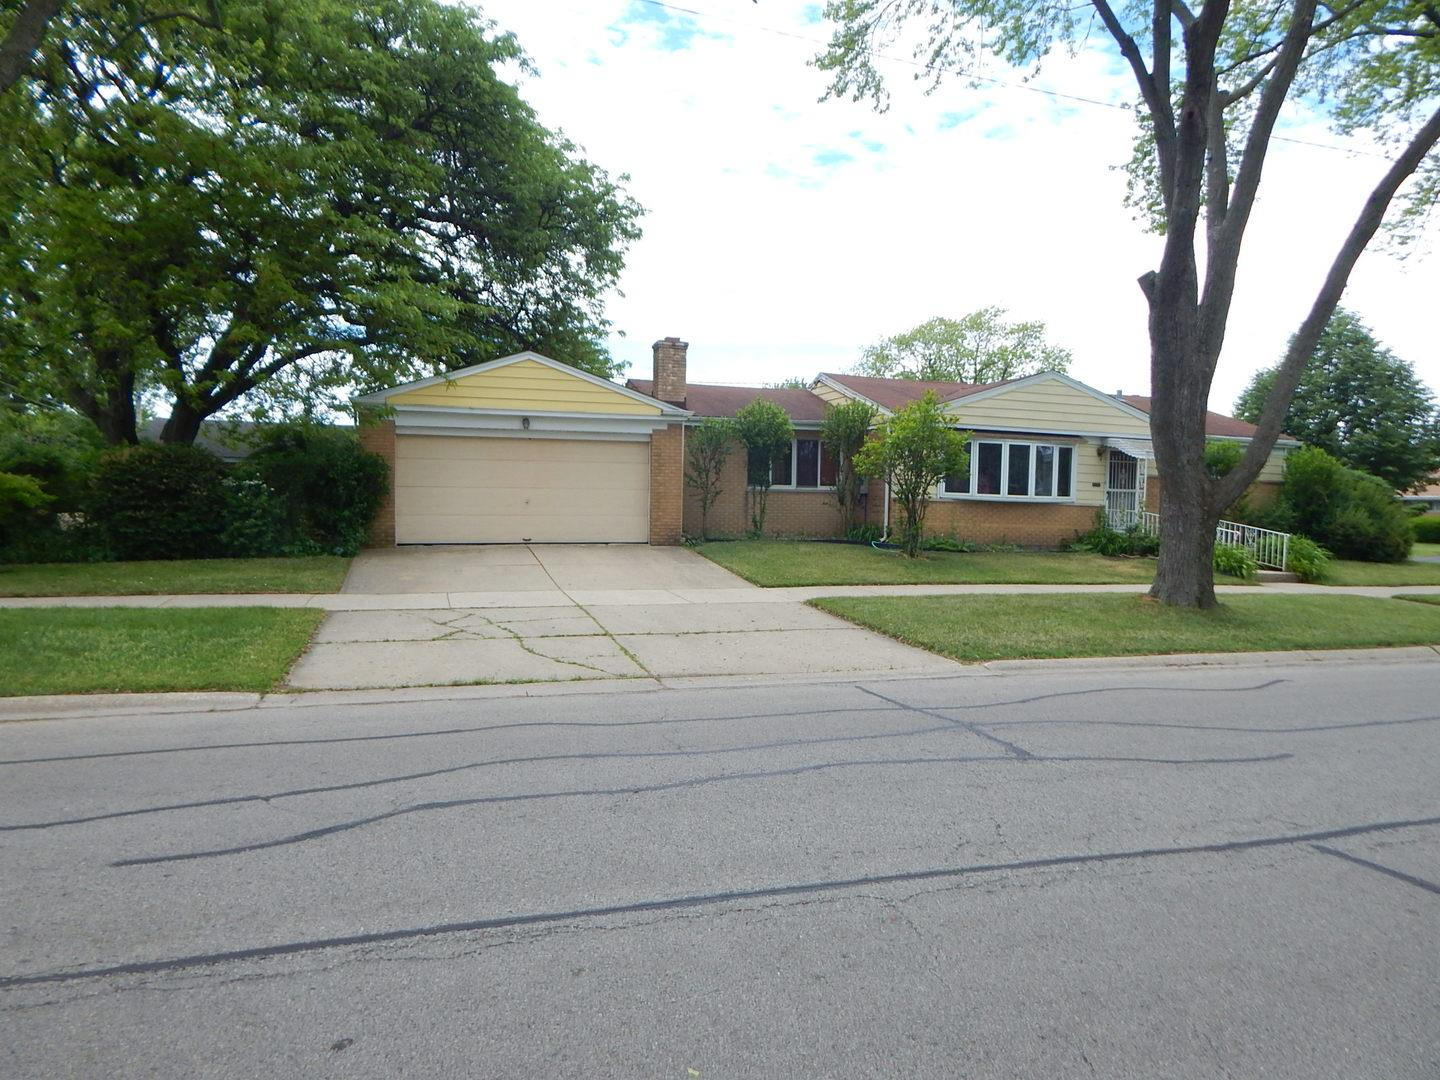 8361 N Odell Avenue, Niles, IL 60714 - #: 10742821